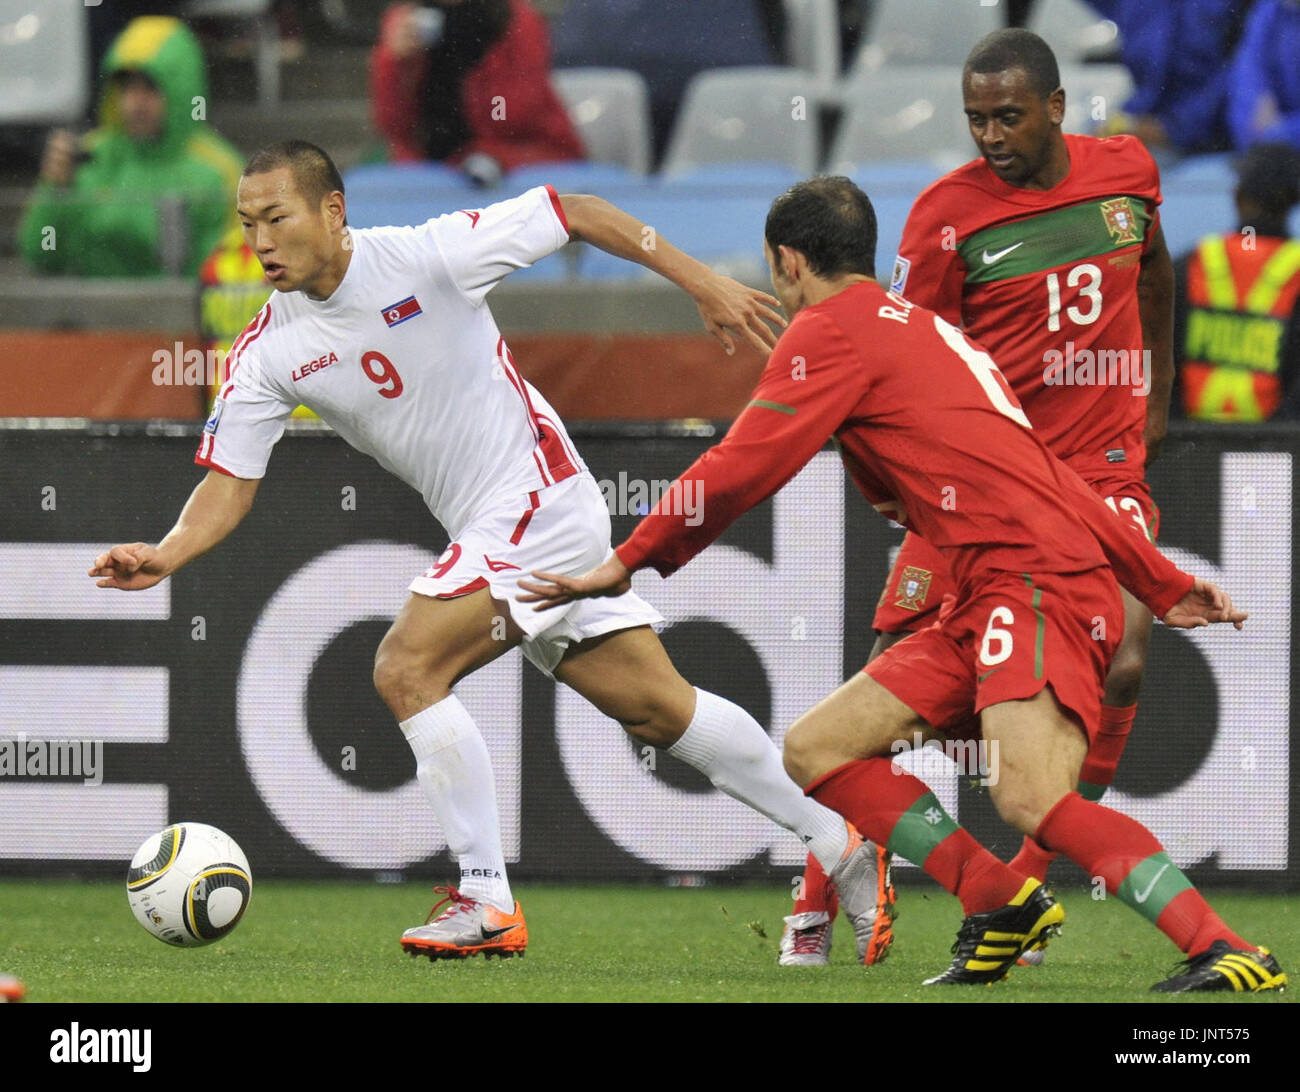 CAPE TOWN, South Africa - North Korea striker Jong Tae Se (L) runs past Portugal's Ricardo Carvalho (6) and Miguel (13) during the first half of a World Cup Group G match at Green Point Stadium in Cape Town on June 21, 2010. (Kyodo) Stock Photo